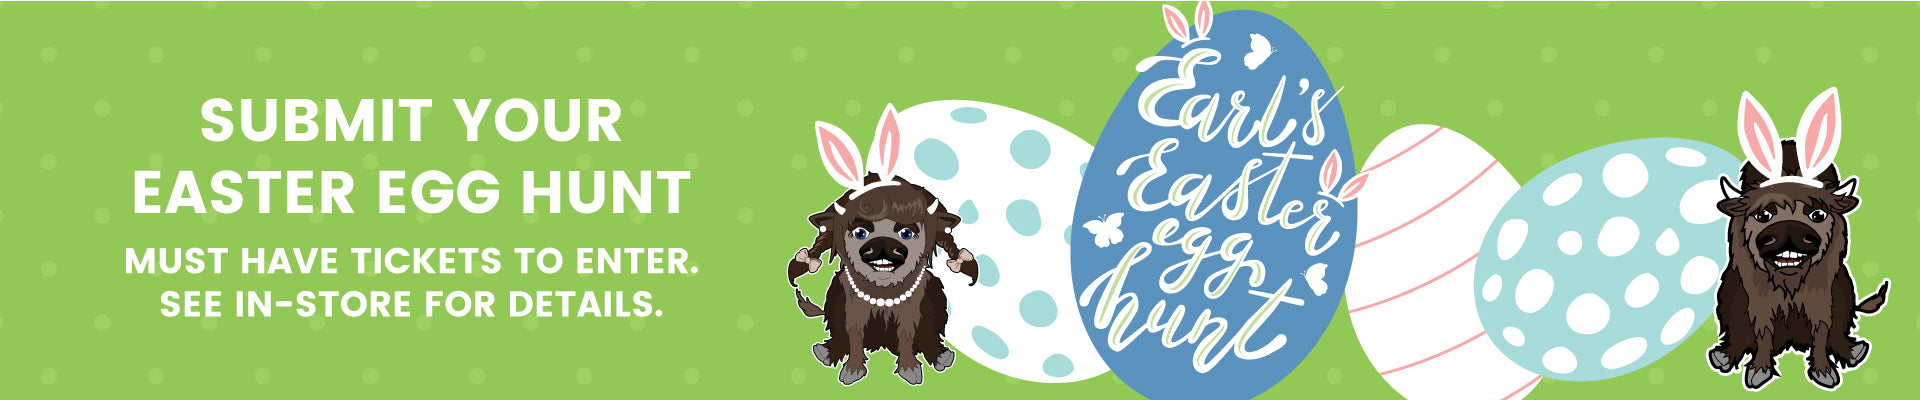 Submit your Easter Egg Hunt. Must have tickets to enter. See in-store for details.